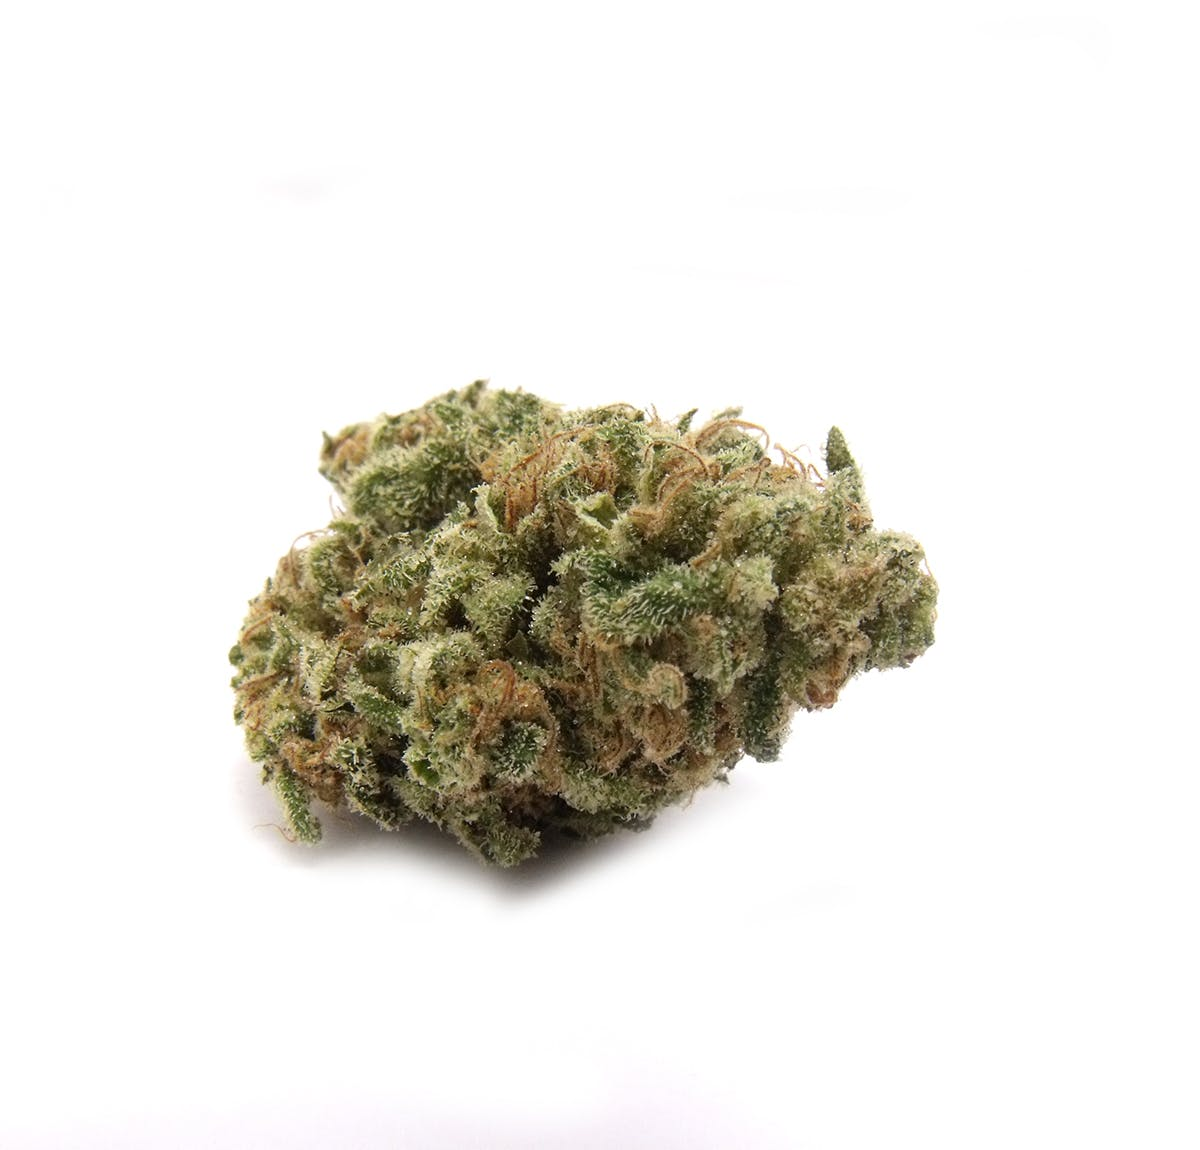 hybrid-private-reserve-strawberry-punch-5g35-2oz310-qp600